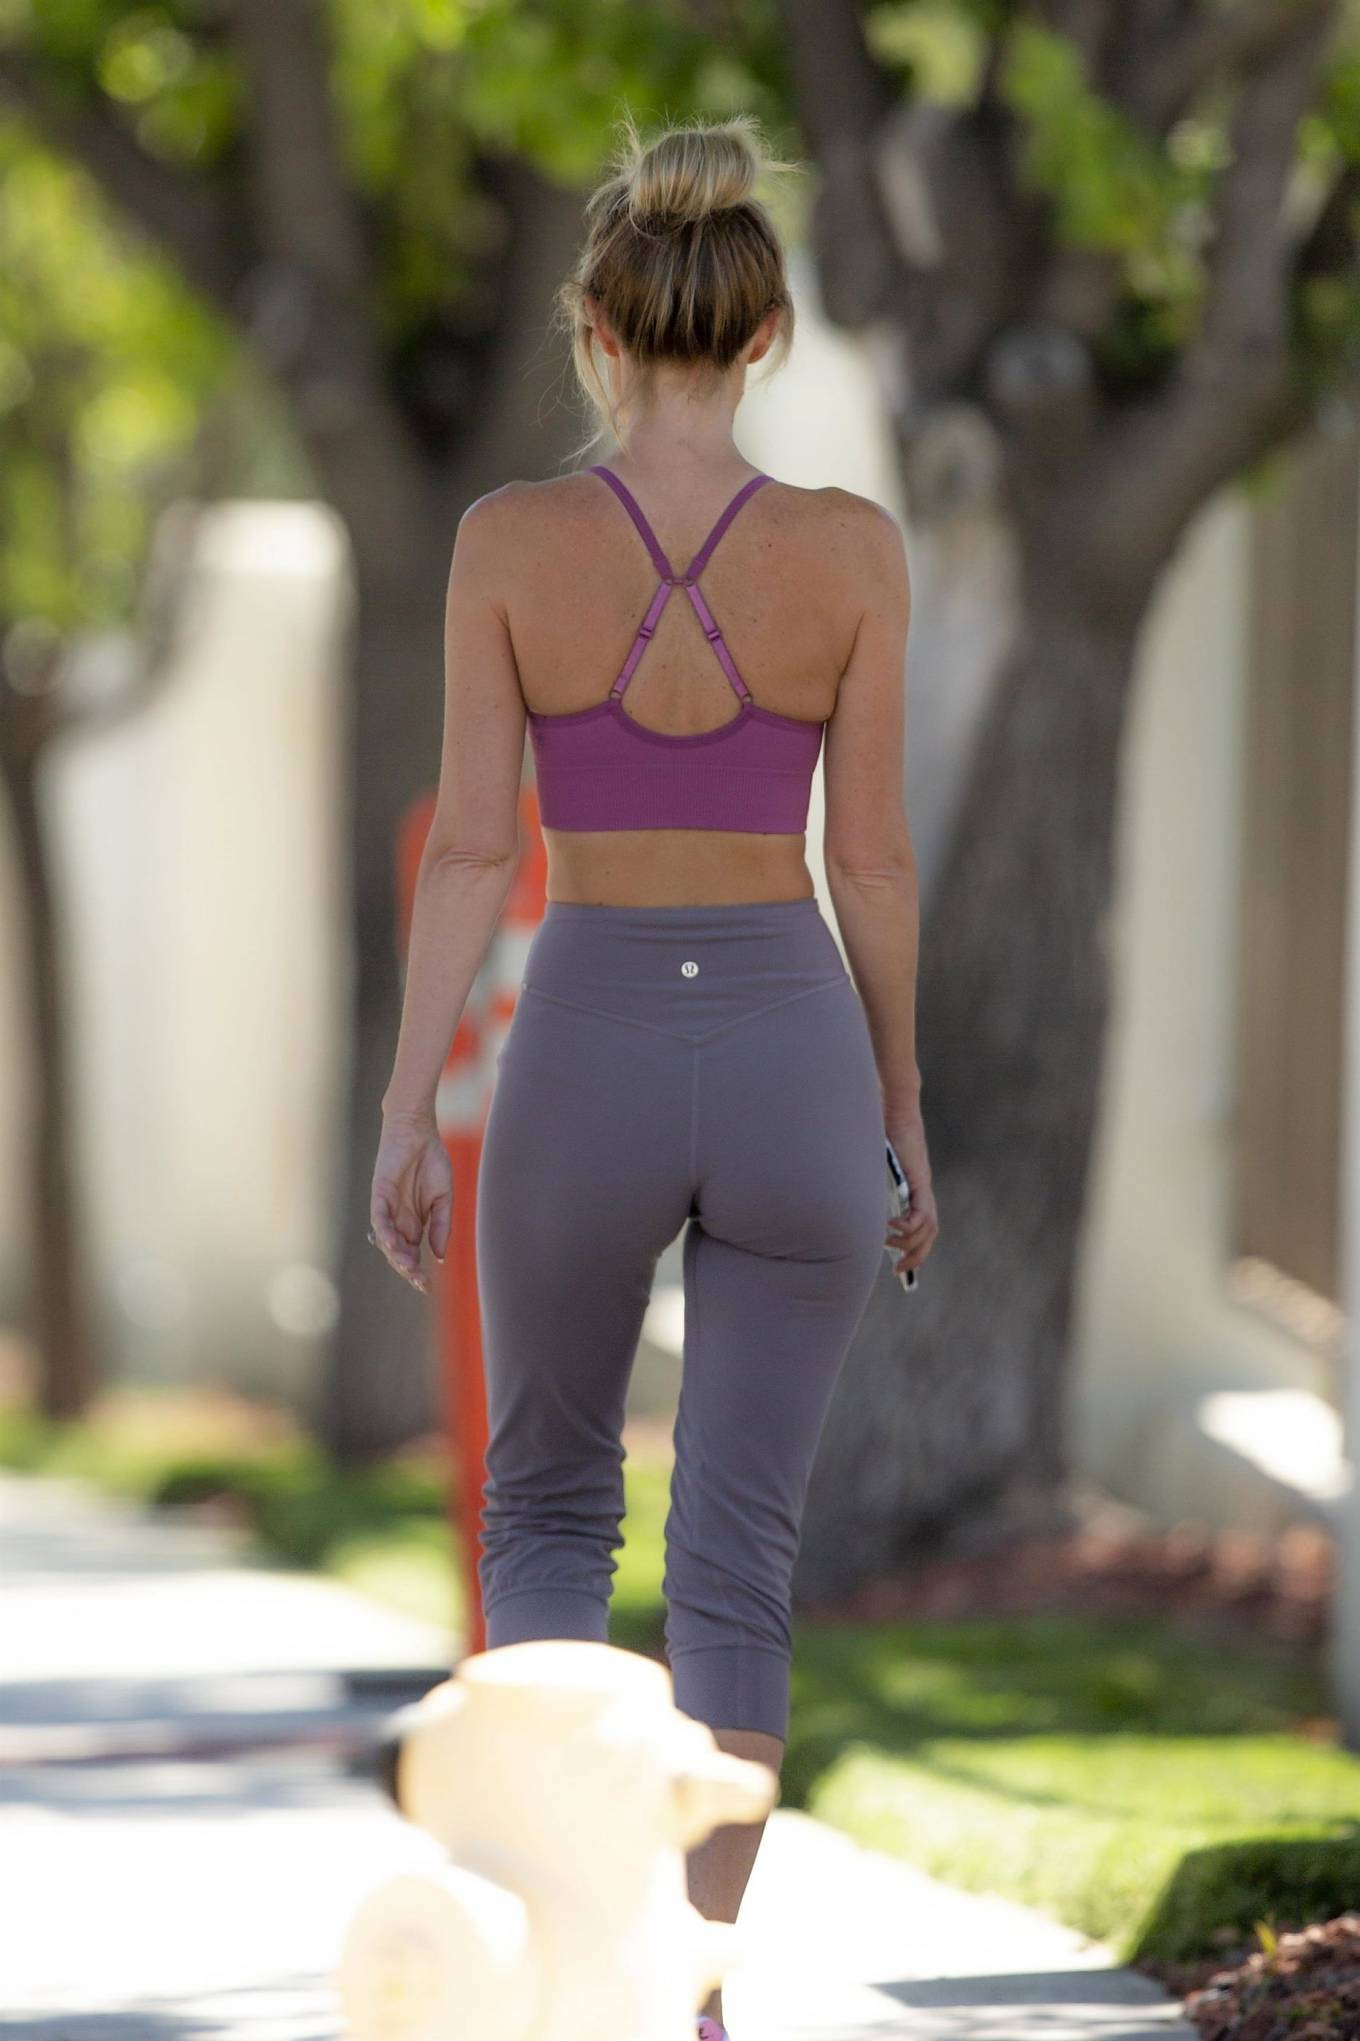 Hayley Roberts Hasselhoff 2020 : Hayley Roberts Hasselhoff in Tights and Sports Bra – Out in Calabasas-03